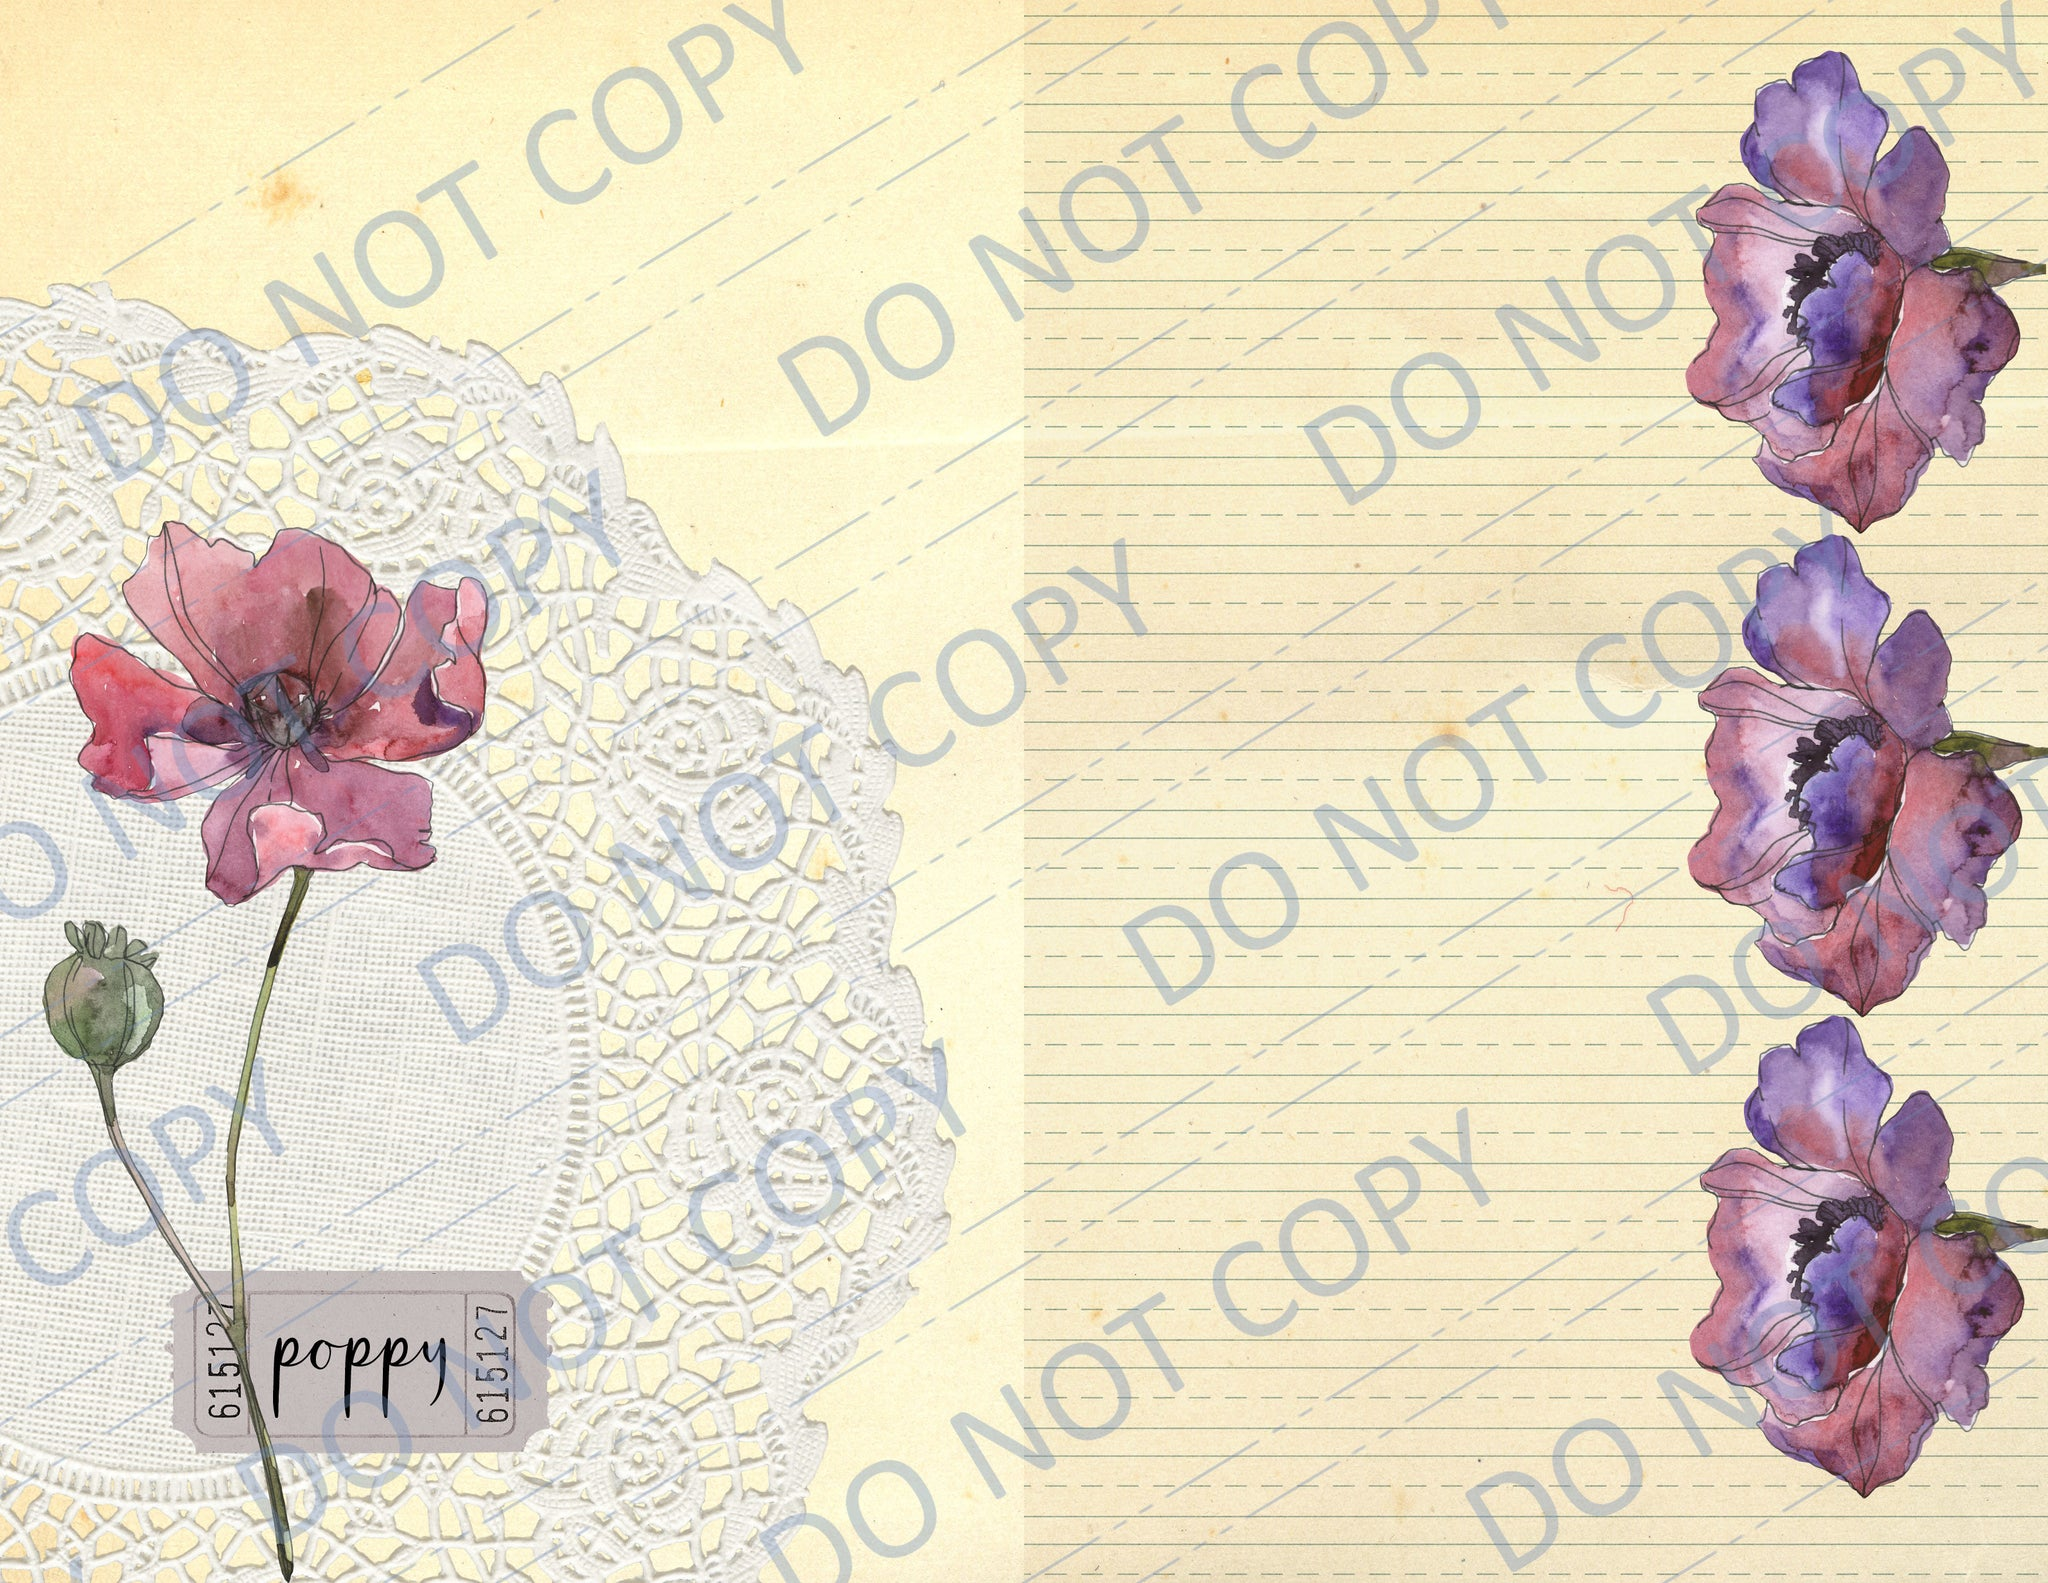 Peaceful Poppies DIGITAL Journal Kit